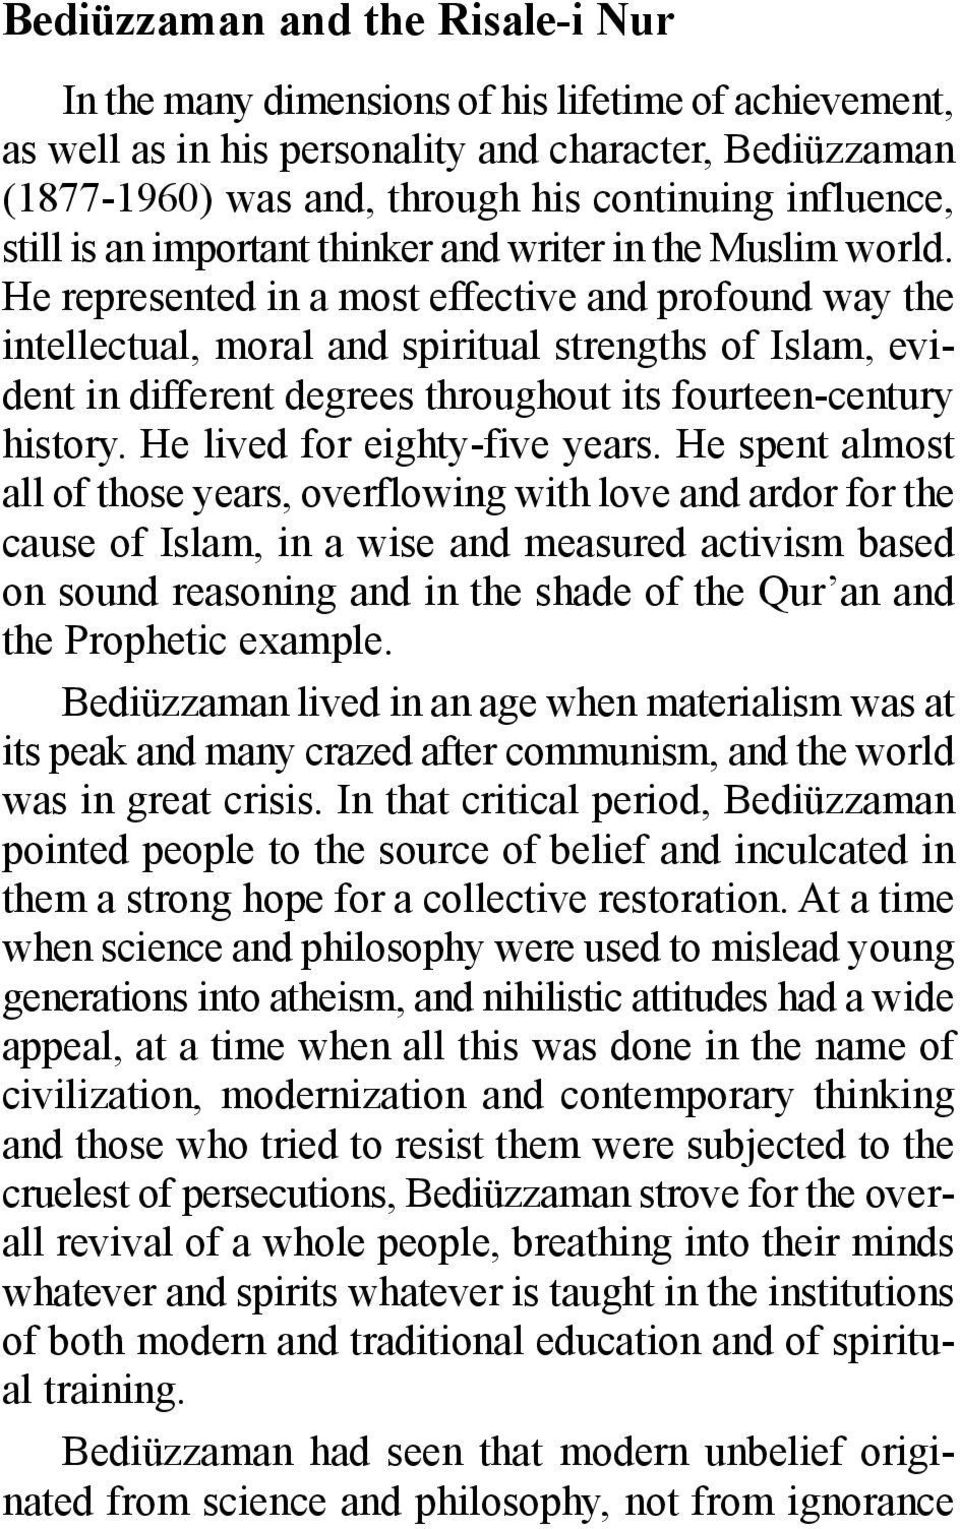 He represented in a most effective and profound way the intellectual, moral and spiritual strengths of Islam, evident in different degrees throughout its fourteen-century history.